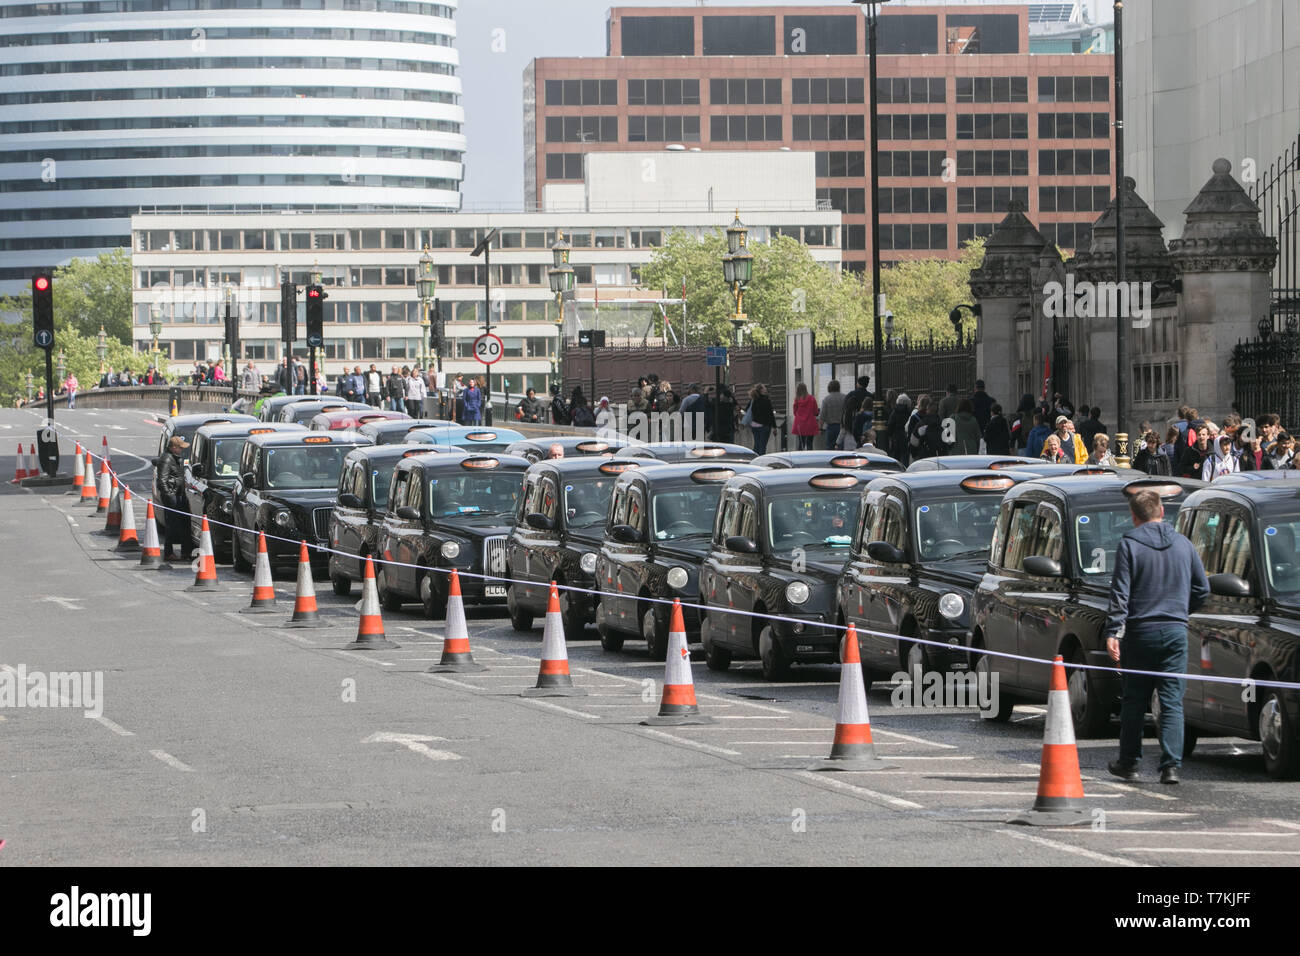 London, UK. 8th May, 2019. Black cab drivers stage a protest in Westminster blocking access to Parliament Square to protest against the congestion charge imposed by London TFL by banning them from parts of London  in order to improve air quality and cut  pollution Credit: amer ghazzal/Alamy Live News - Stock Image